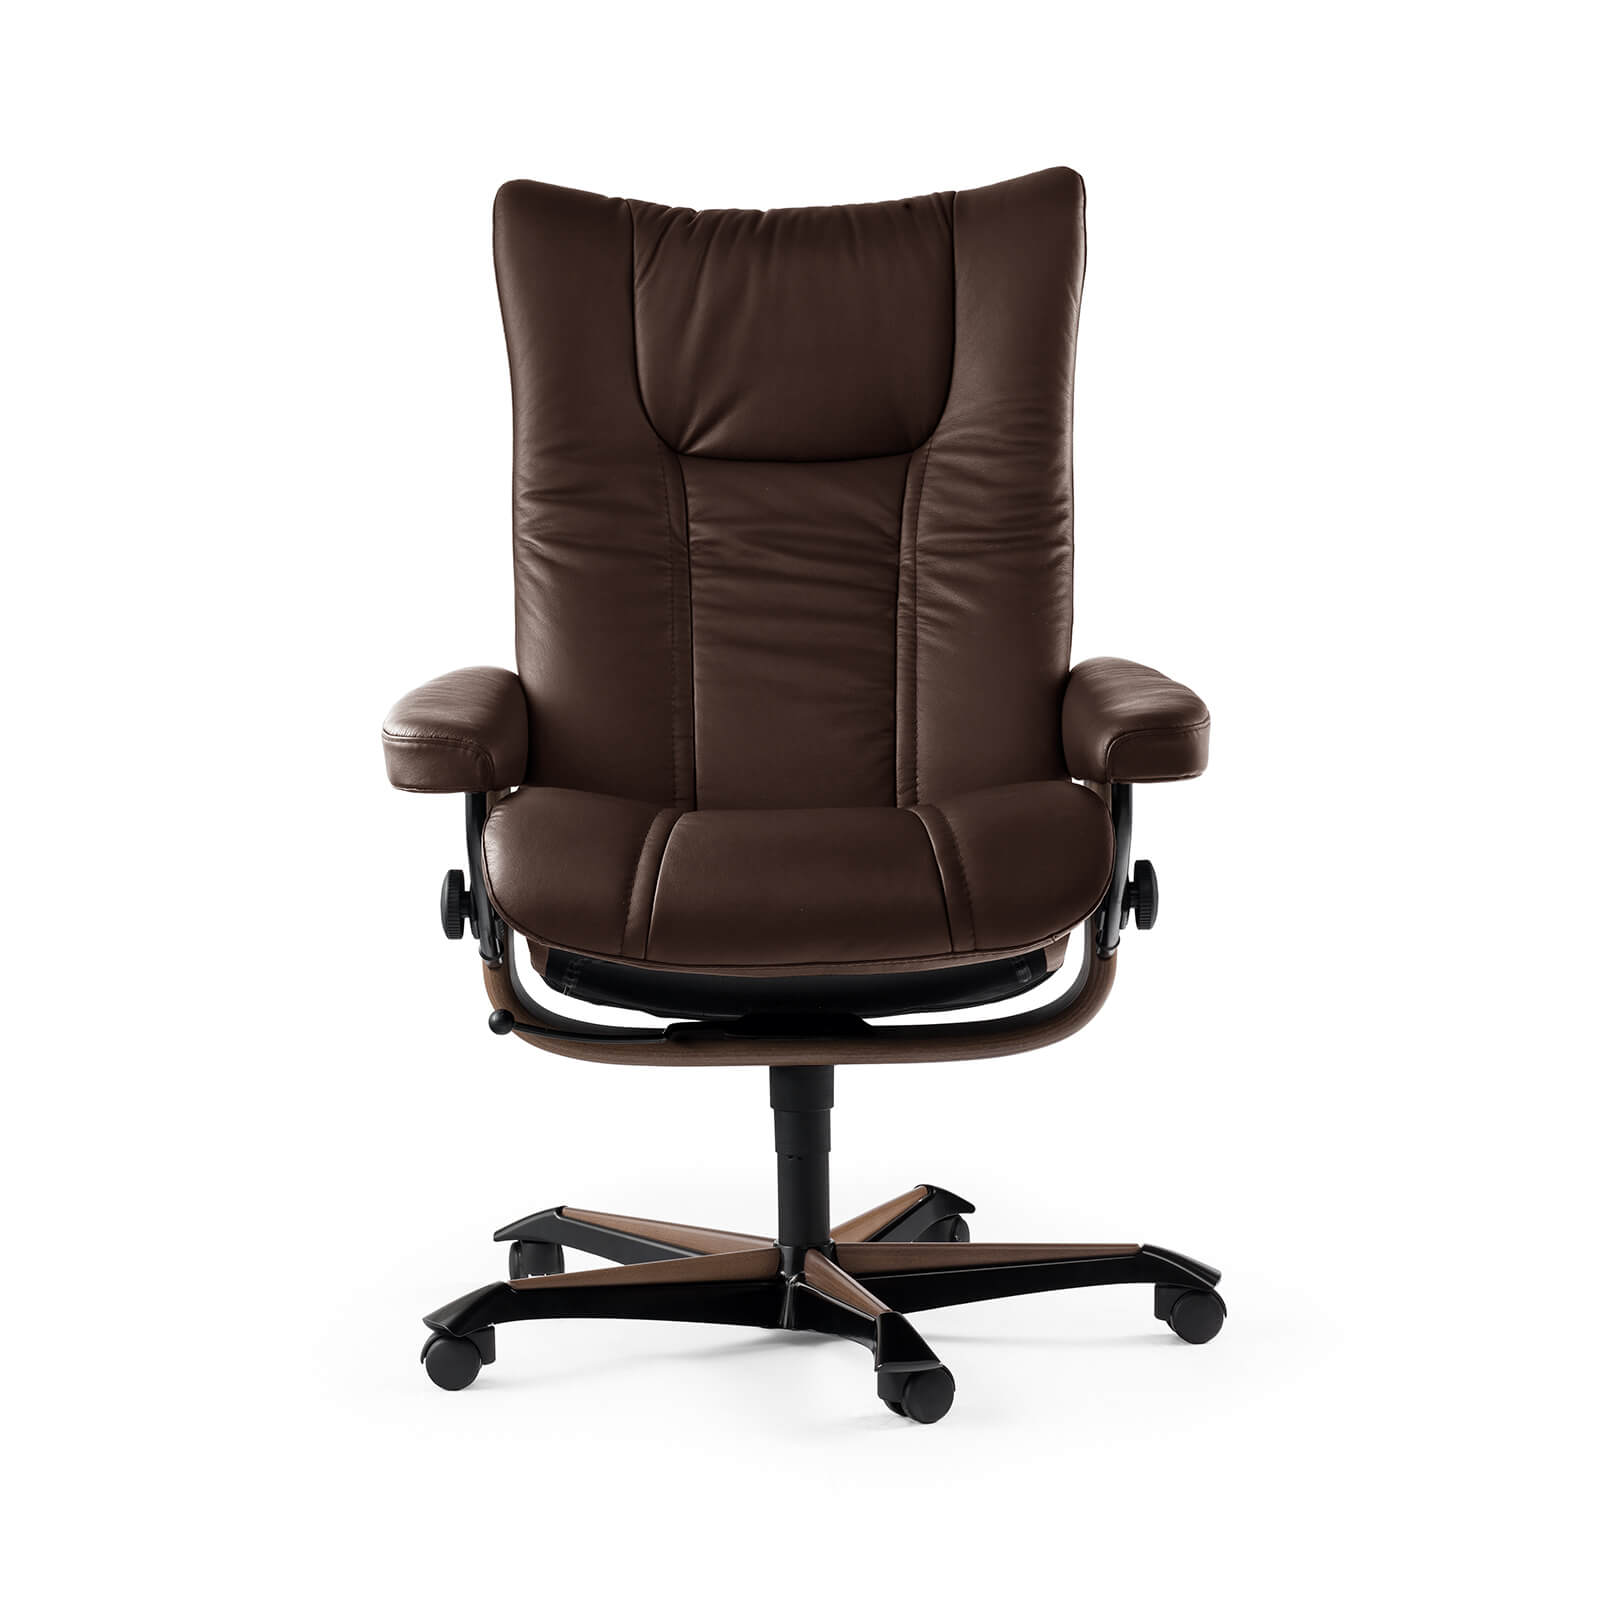 stressless sessel wing home office m braun stressless. Black Bedroom Furniture Sets. Home Design Ideas